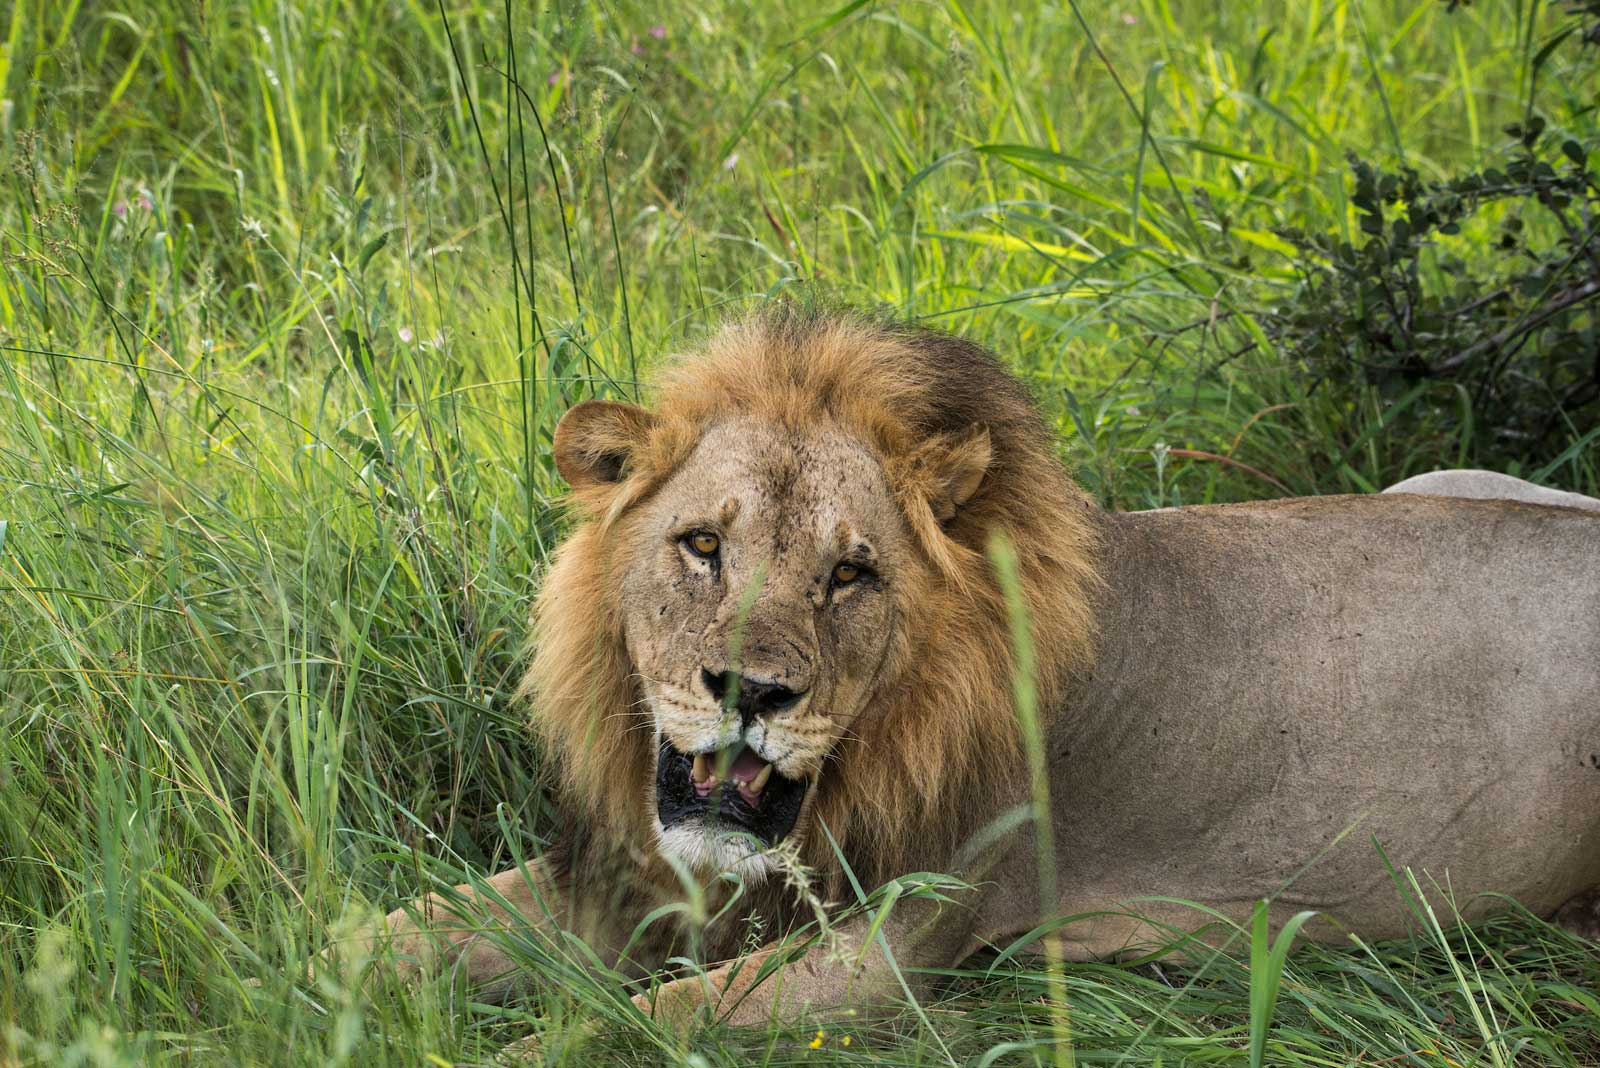 RAW Botswana, Motswiri Camp : Hefty Male Lions Devour Kill in the Selinda